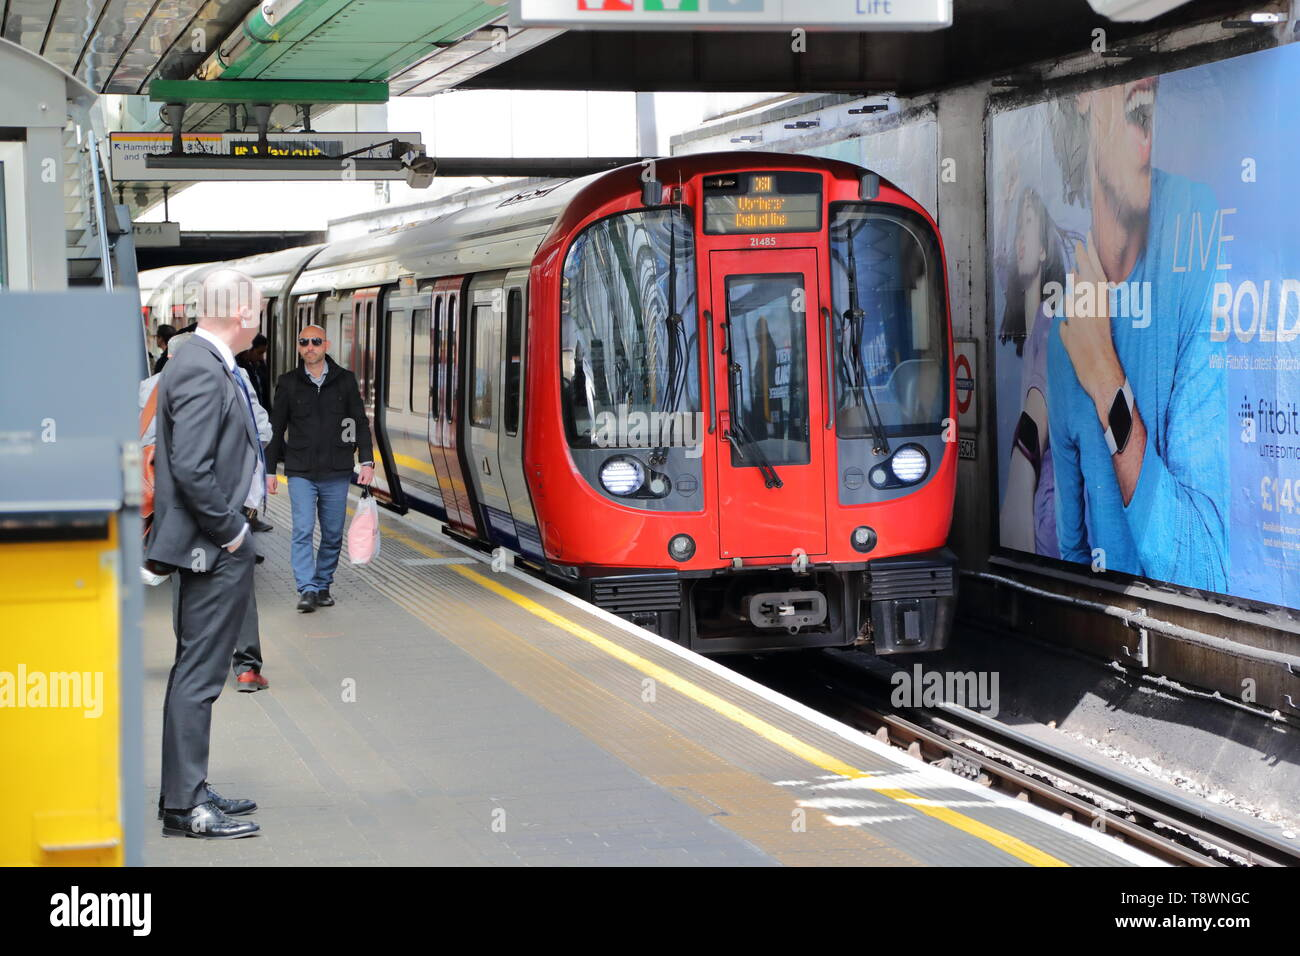 An Underground train arriving at Hammersmith tube station, London, UK - Stock Image